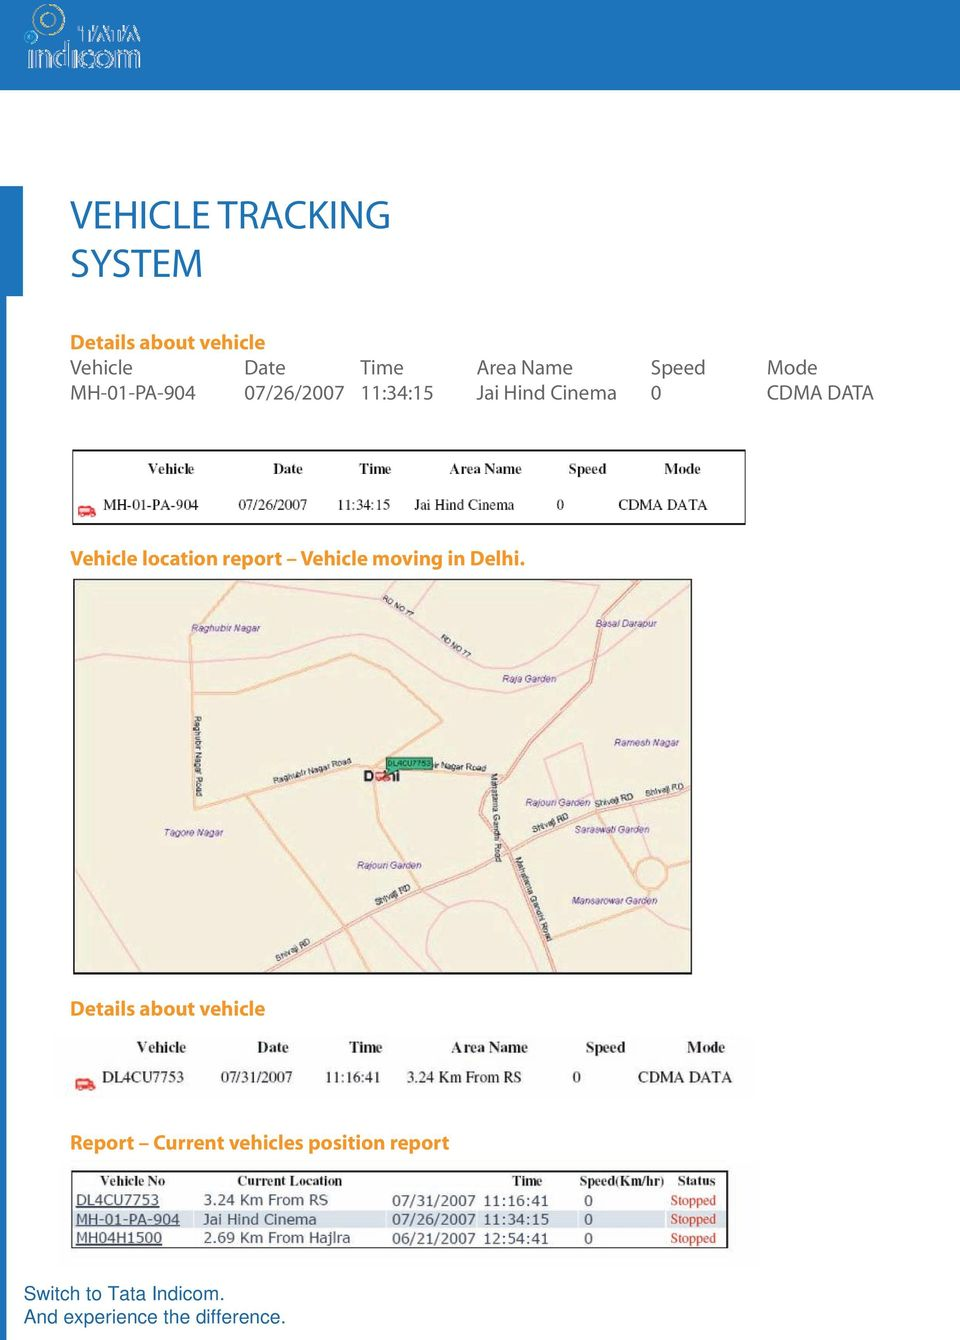 CDMA DATA Vehicle location report Vehicle moving in Delhi.